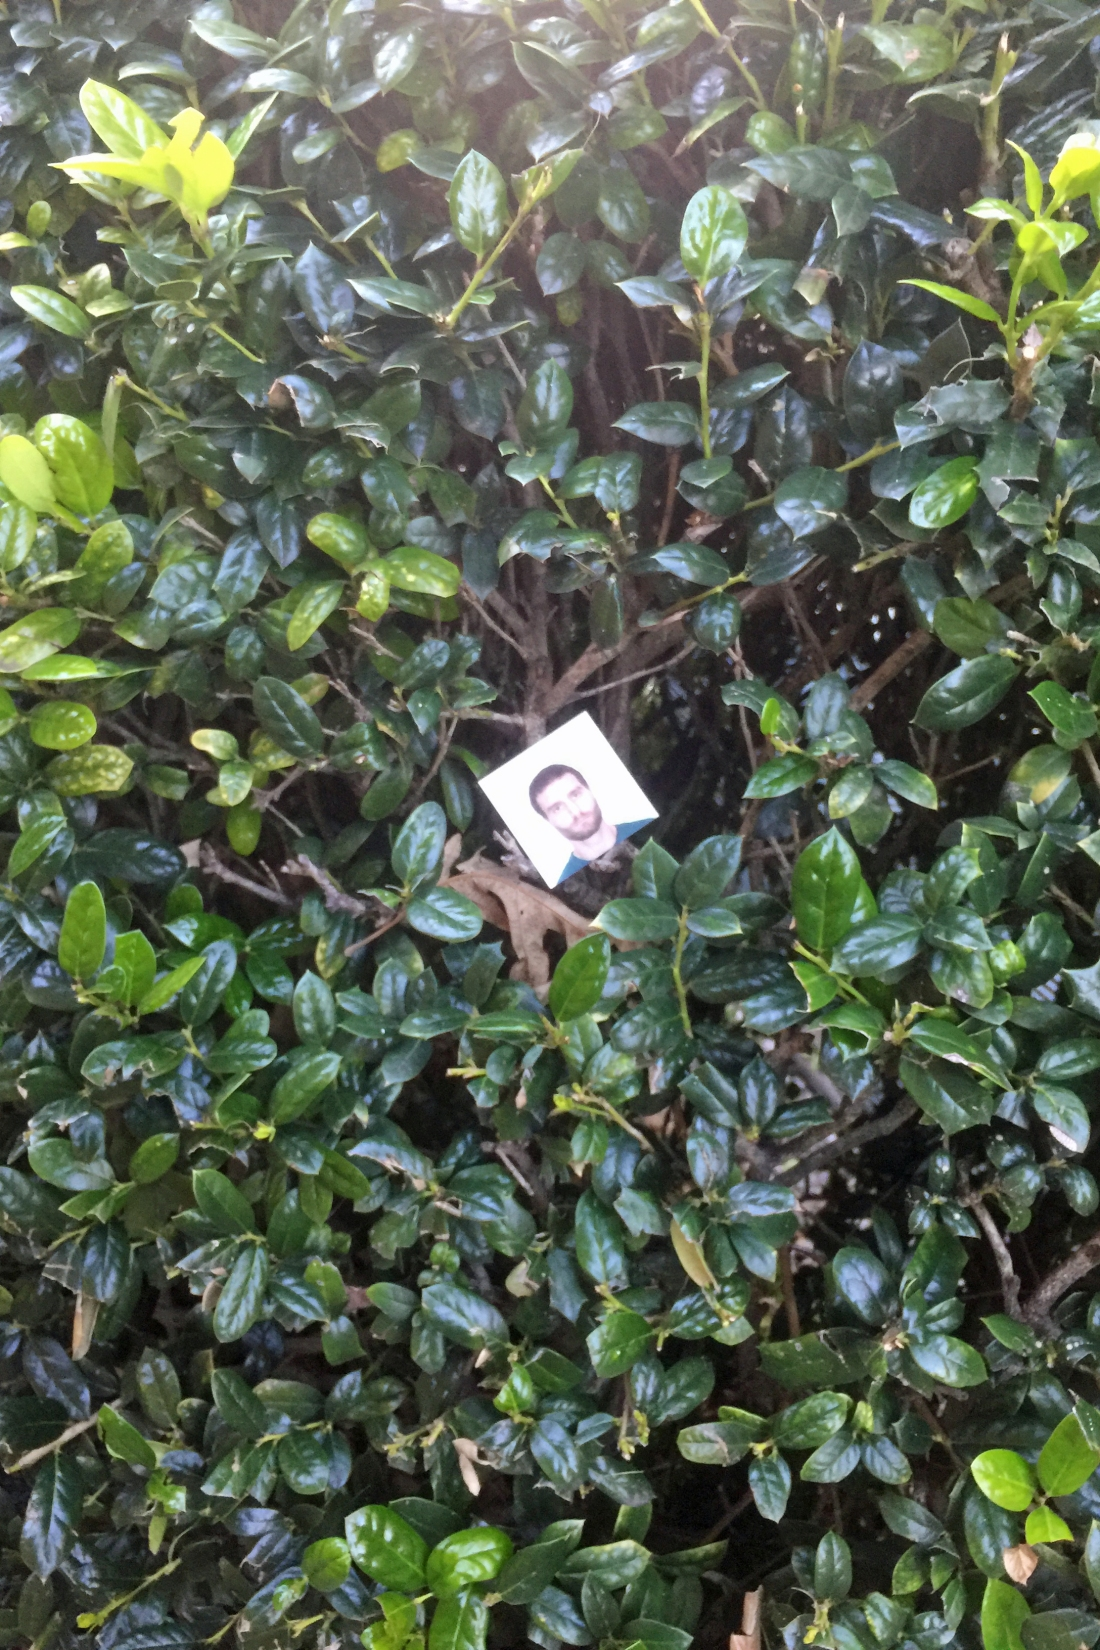 Face in the bushes